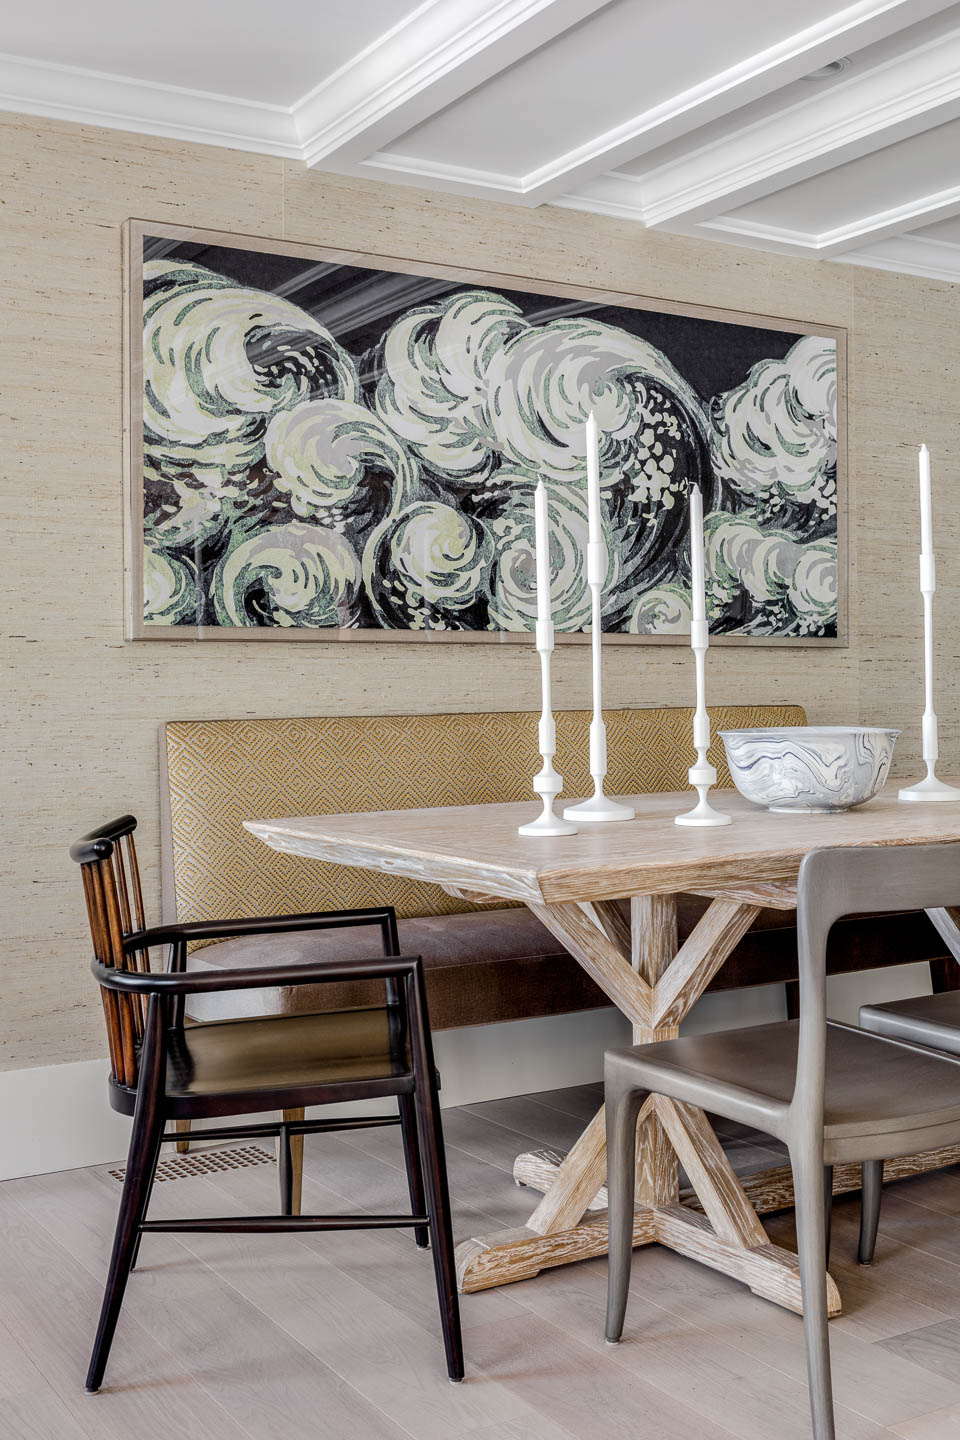 Newport, Rhode Island, Dining Room, Interior Design, Bench seat, artwork, dining table, table decor